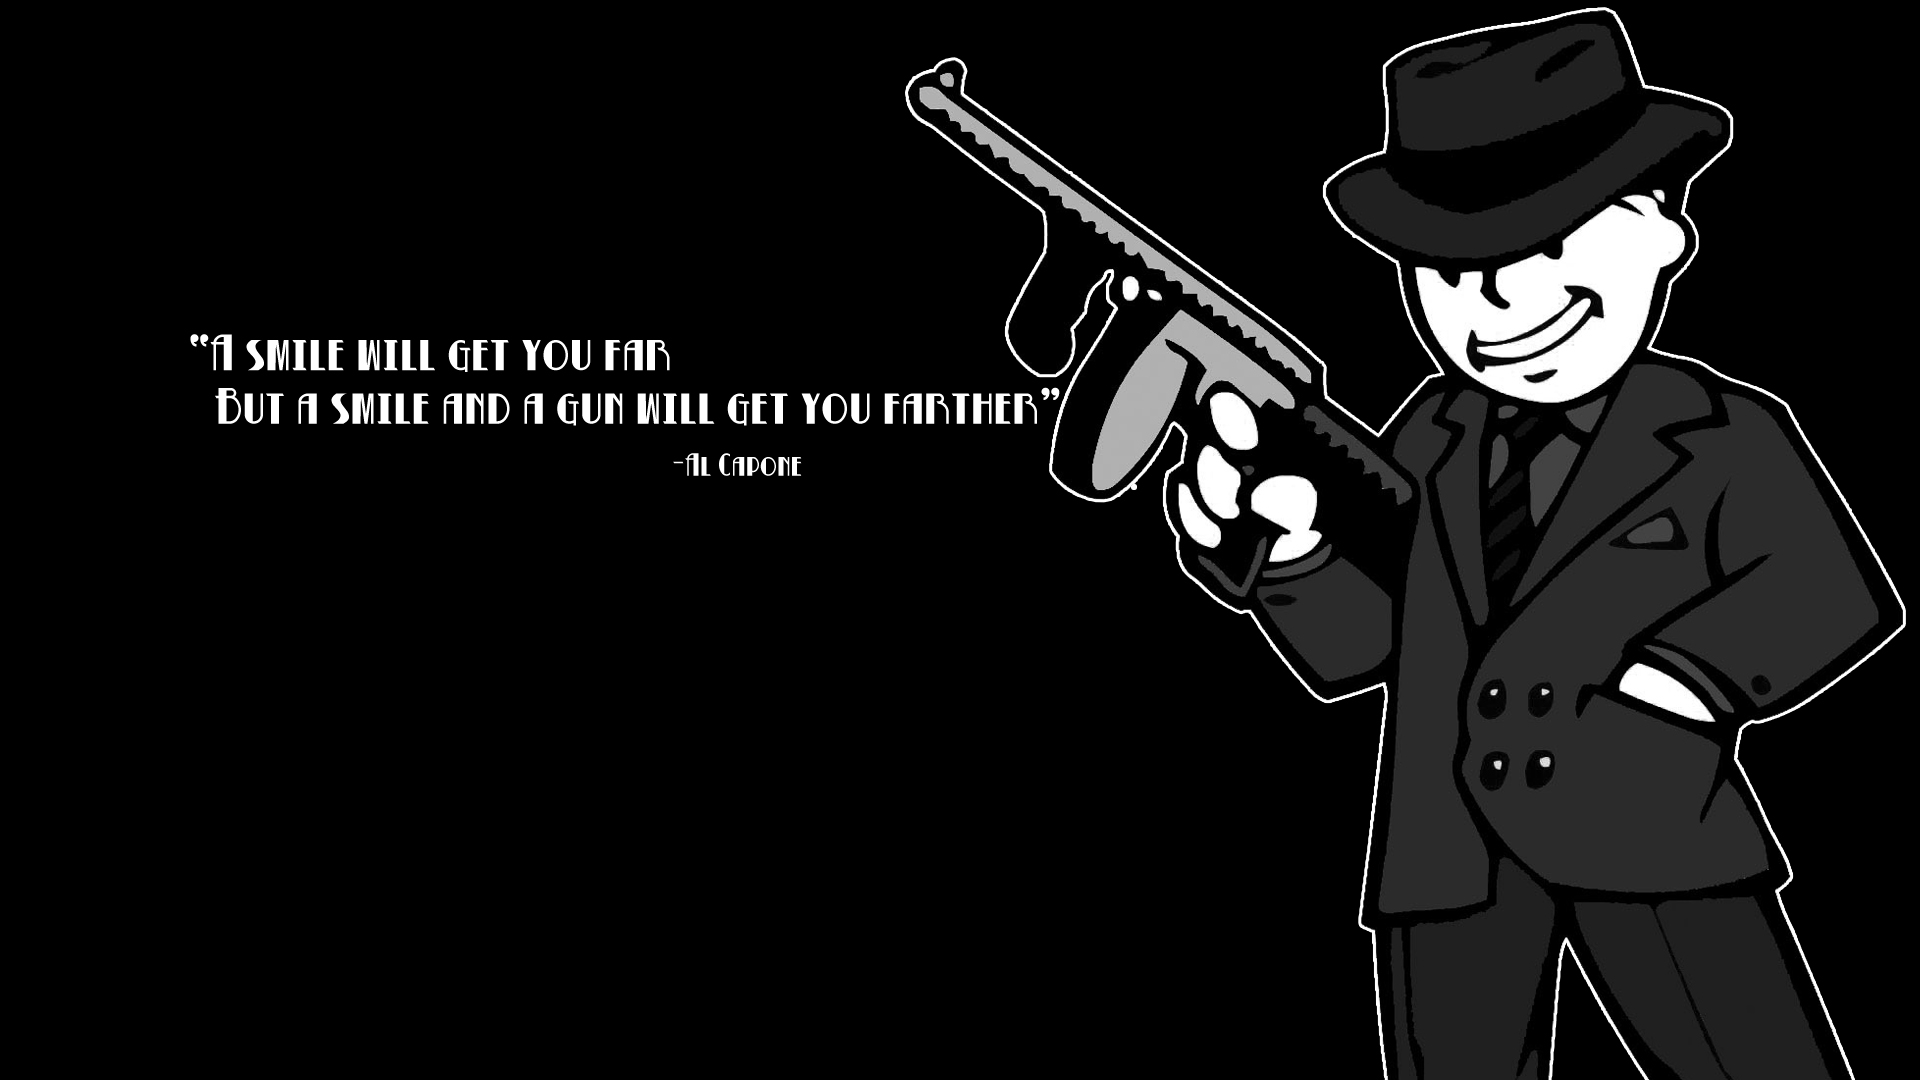 anime wallpaper 1920x1080 quotes - photo #41